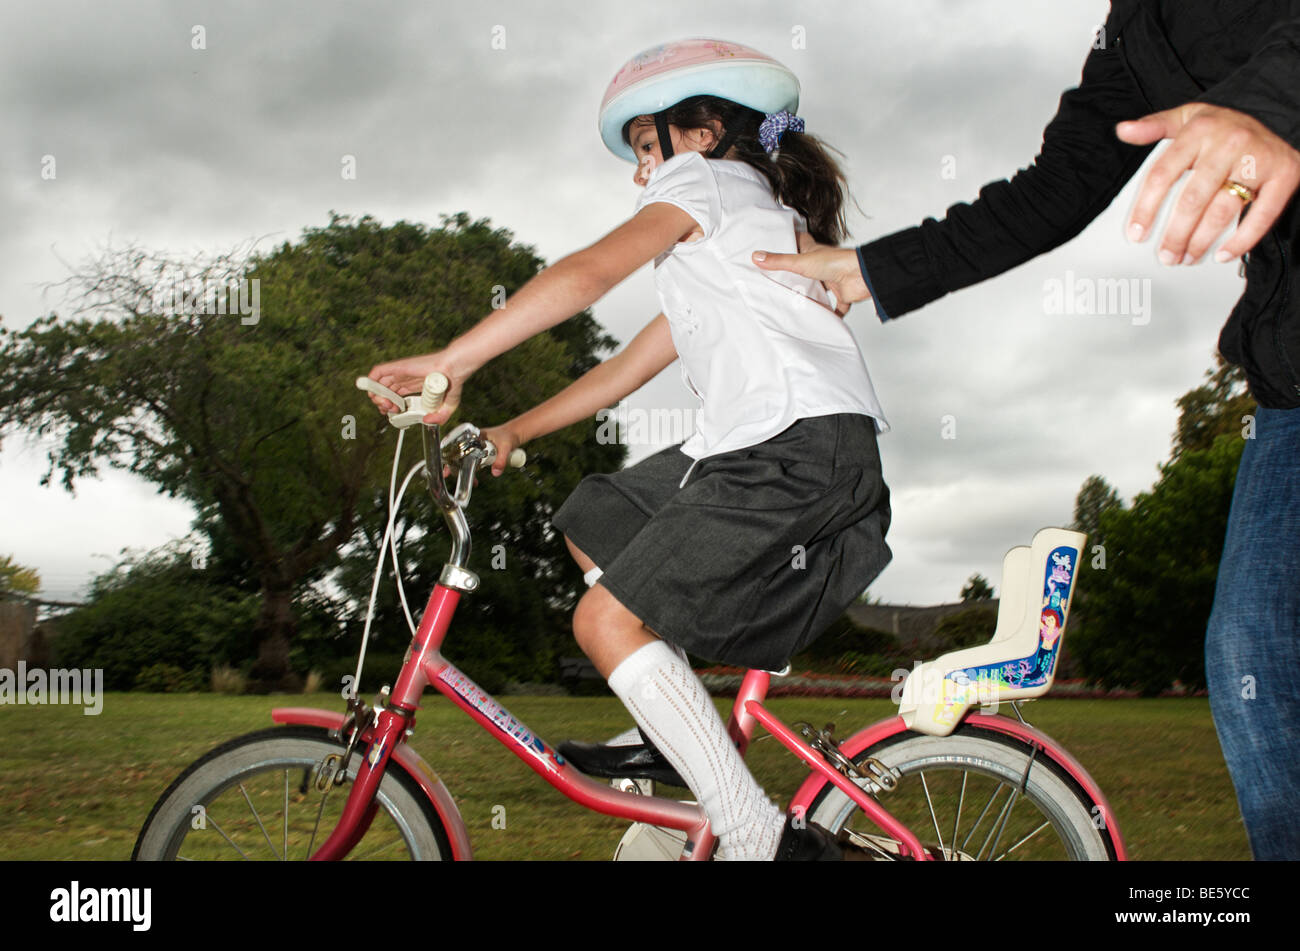 Parent helping child to learn riding a bicycle - Stock Image